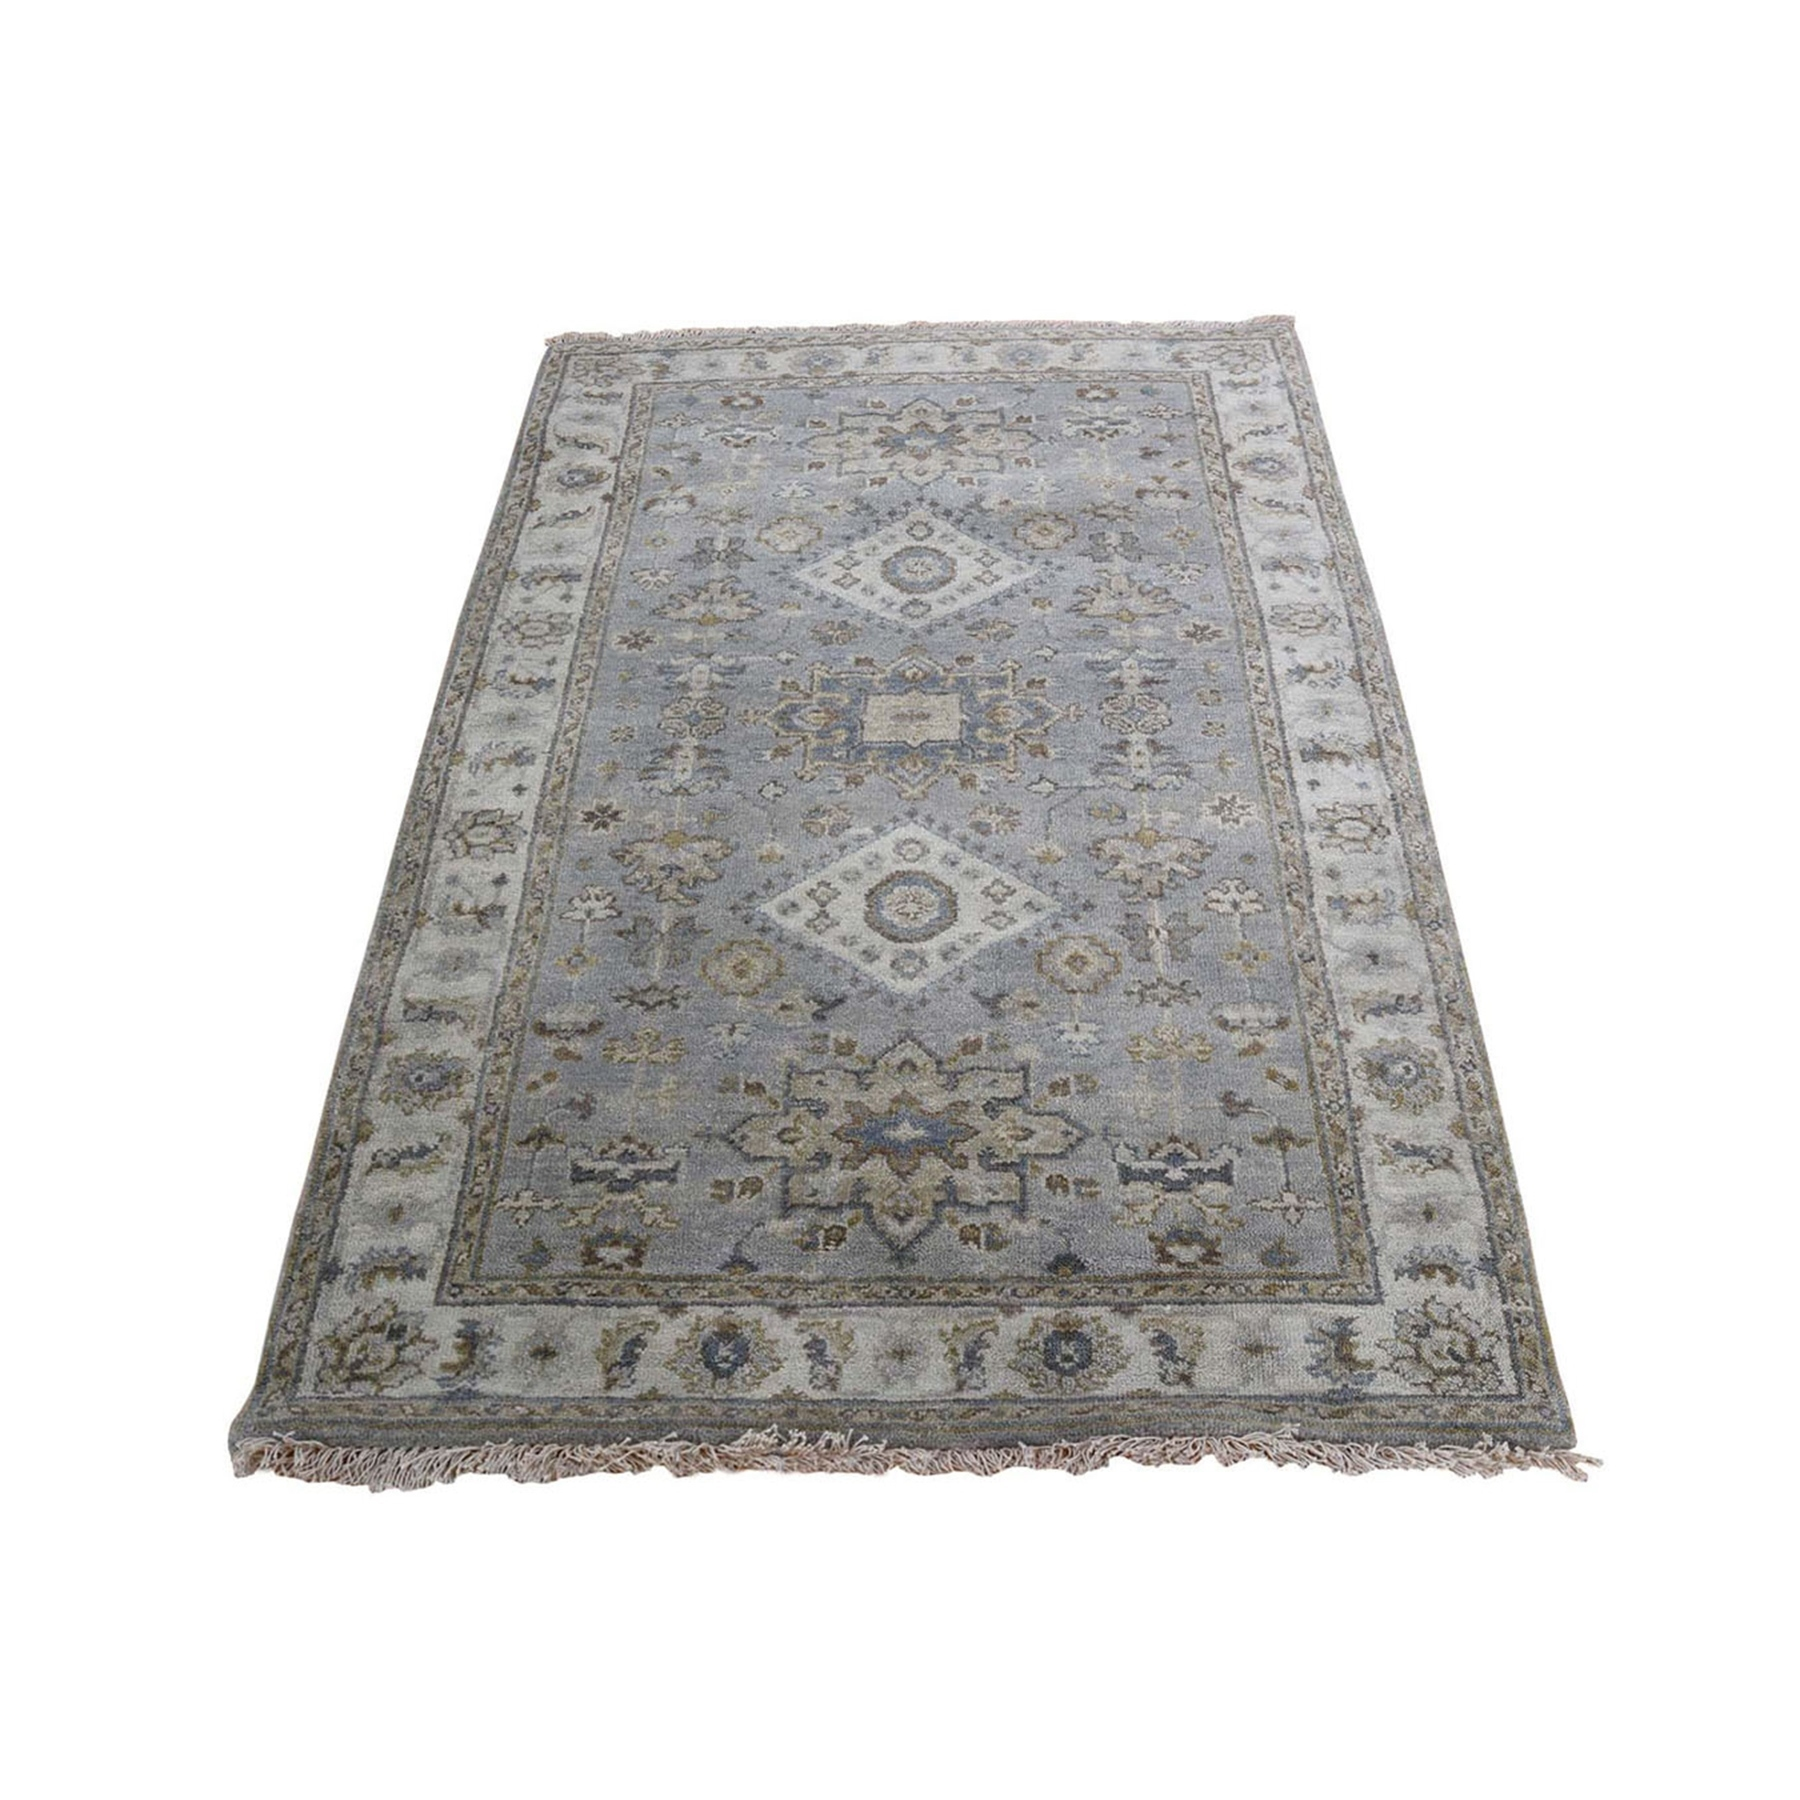 "3'1""x5' Gray Karajeh Design Pure Wool Hand Knotted Oriental Rug"